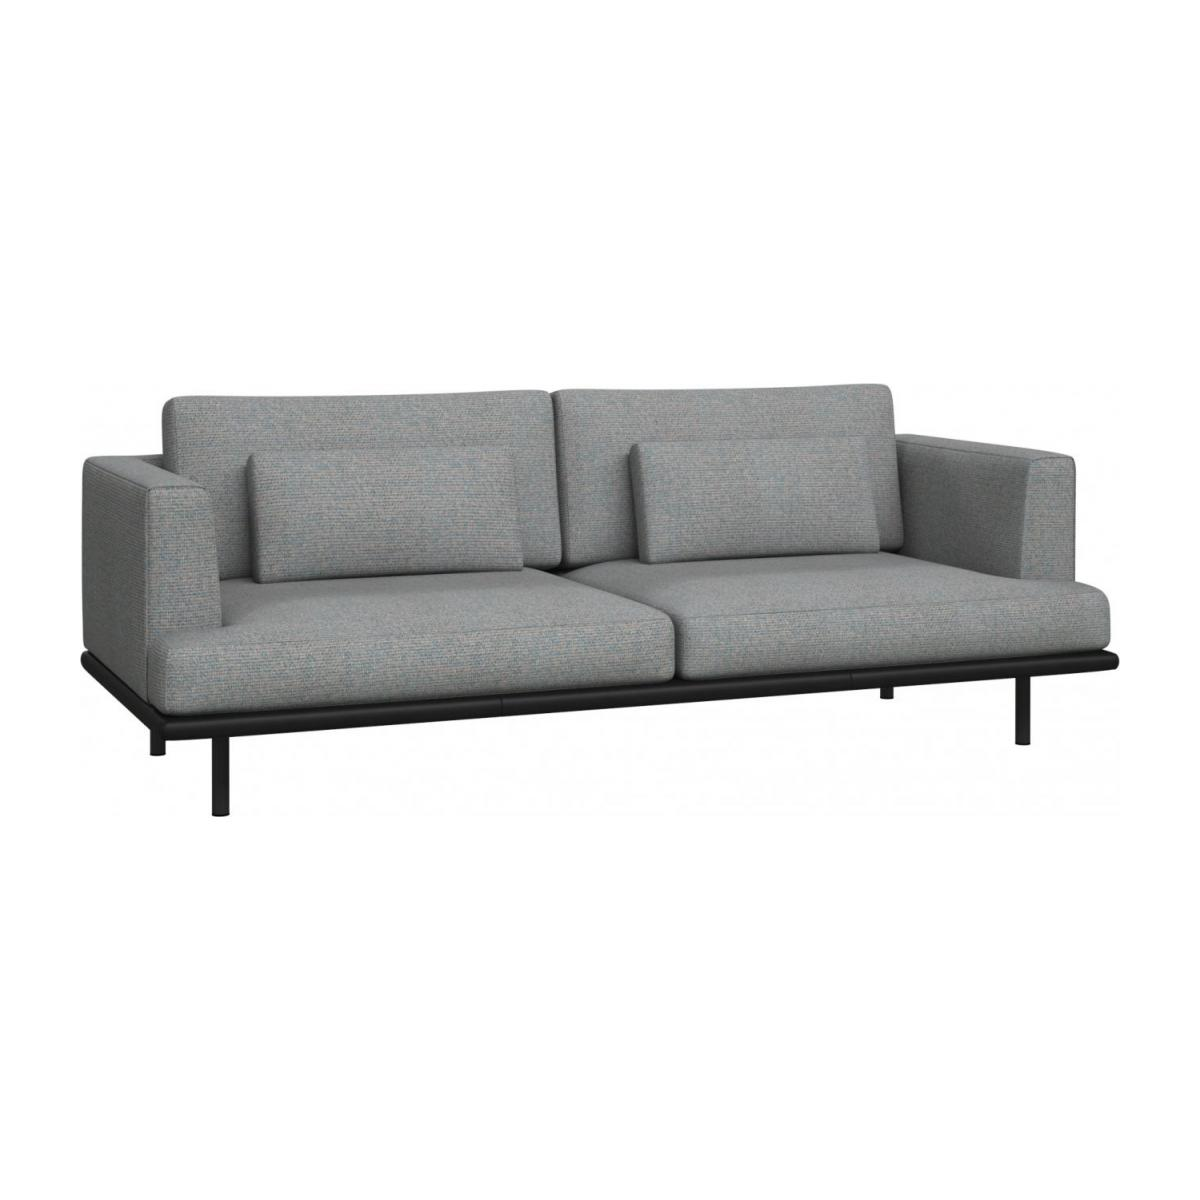 Baci 3 Seater Sofa In Lecce Fabric Blue Reef With Base In Black